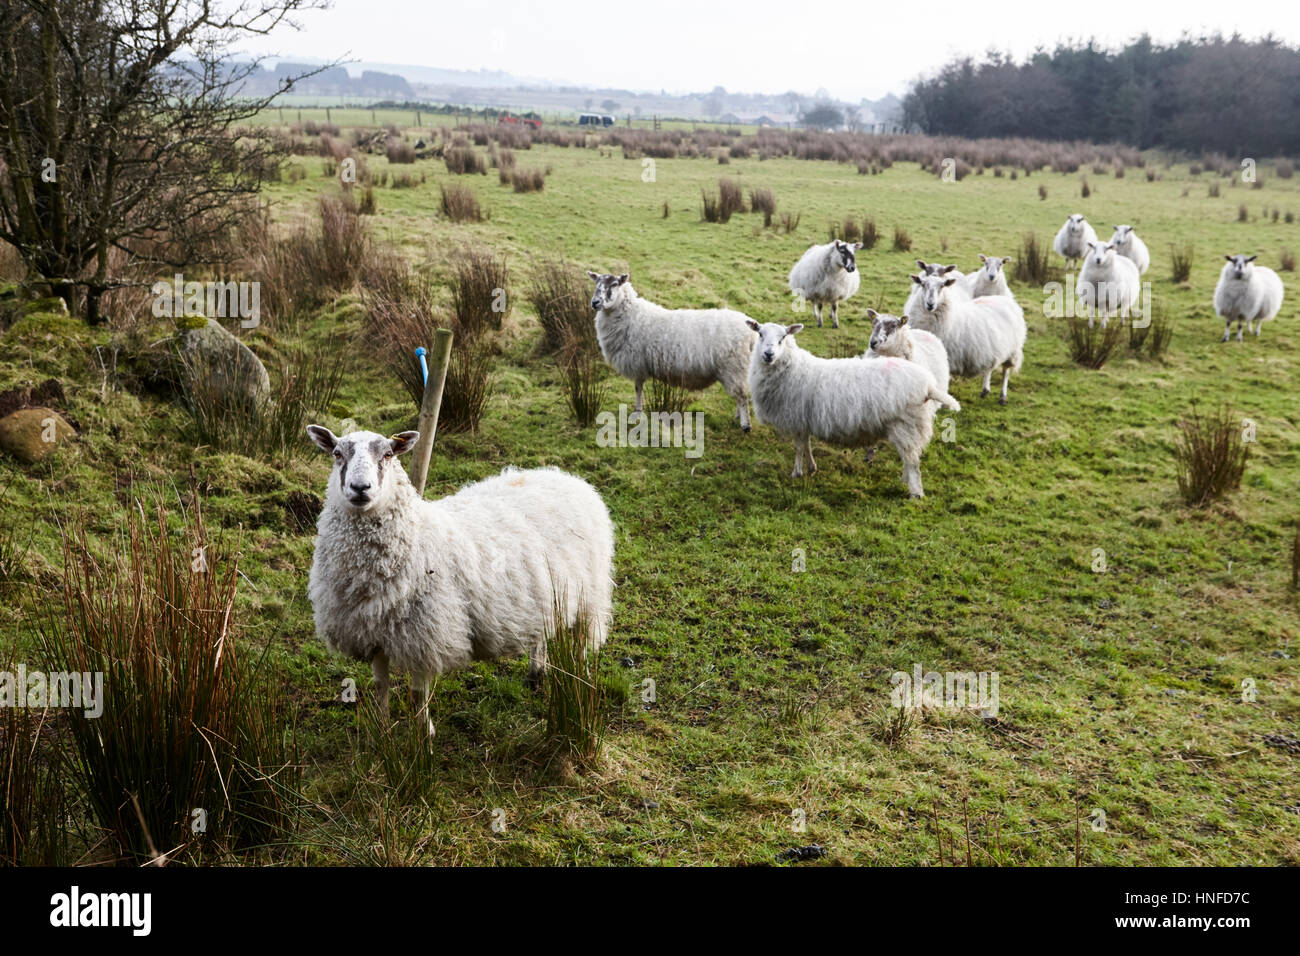 flock of sheep in a field ballymena, county antrim, northern ireland, uk - Stock Image